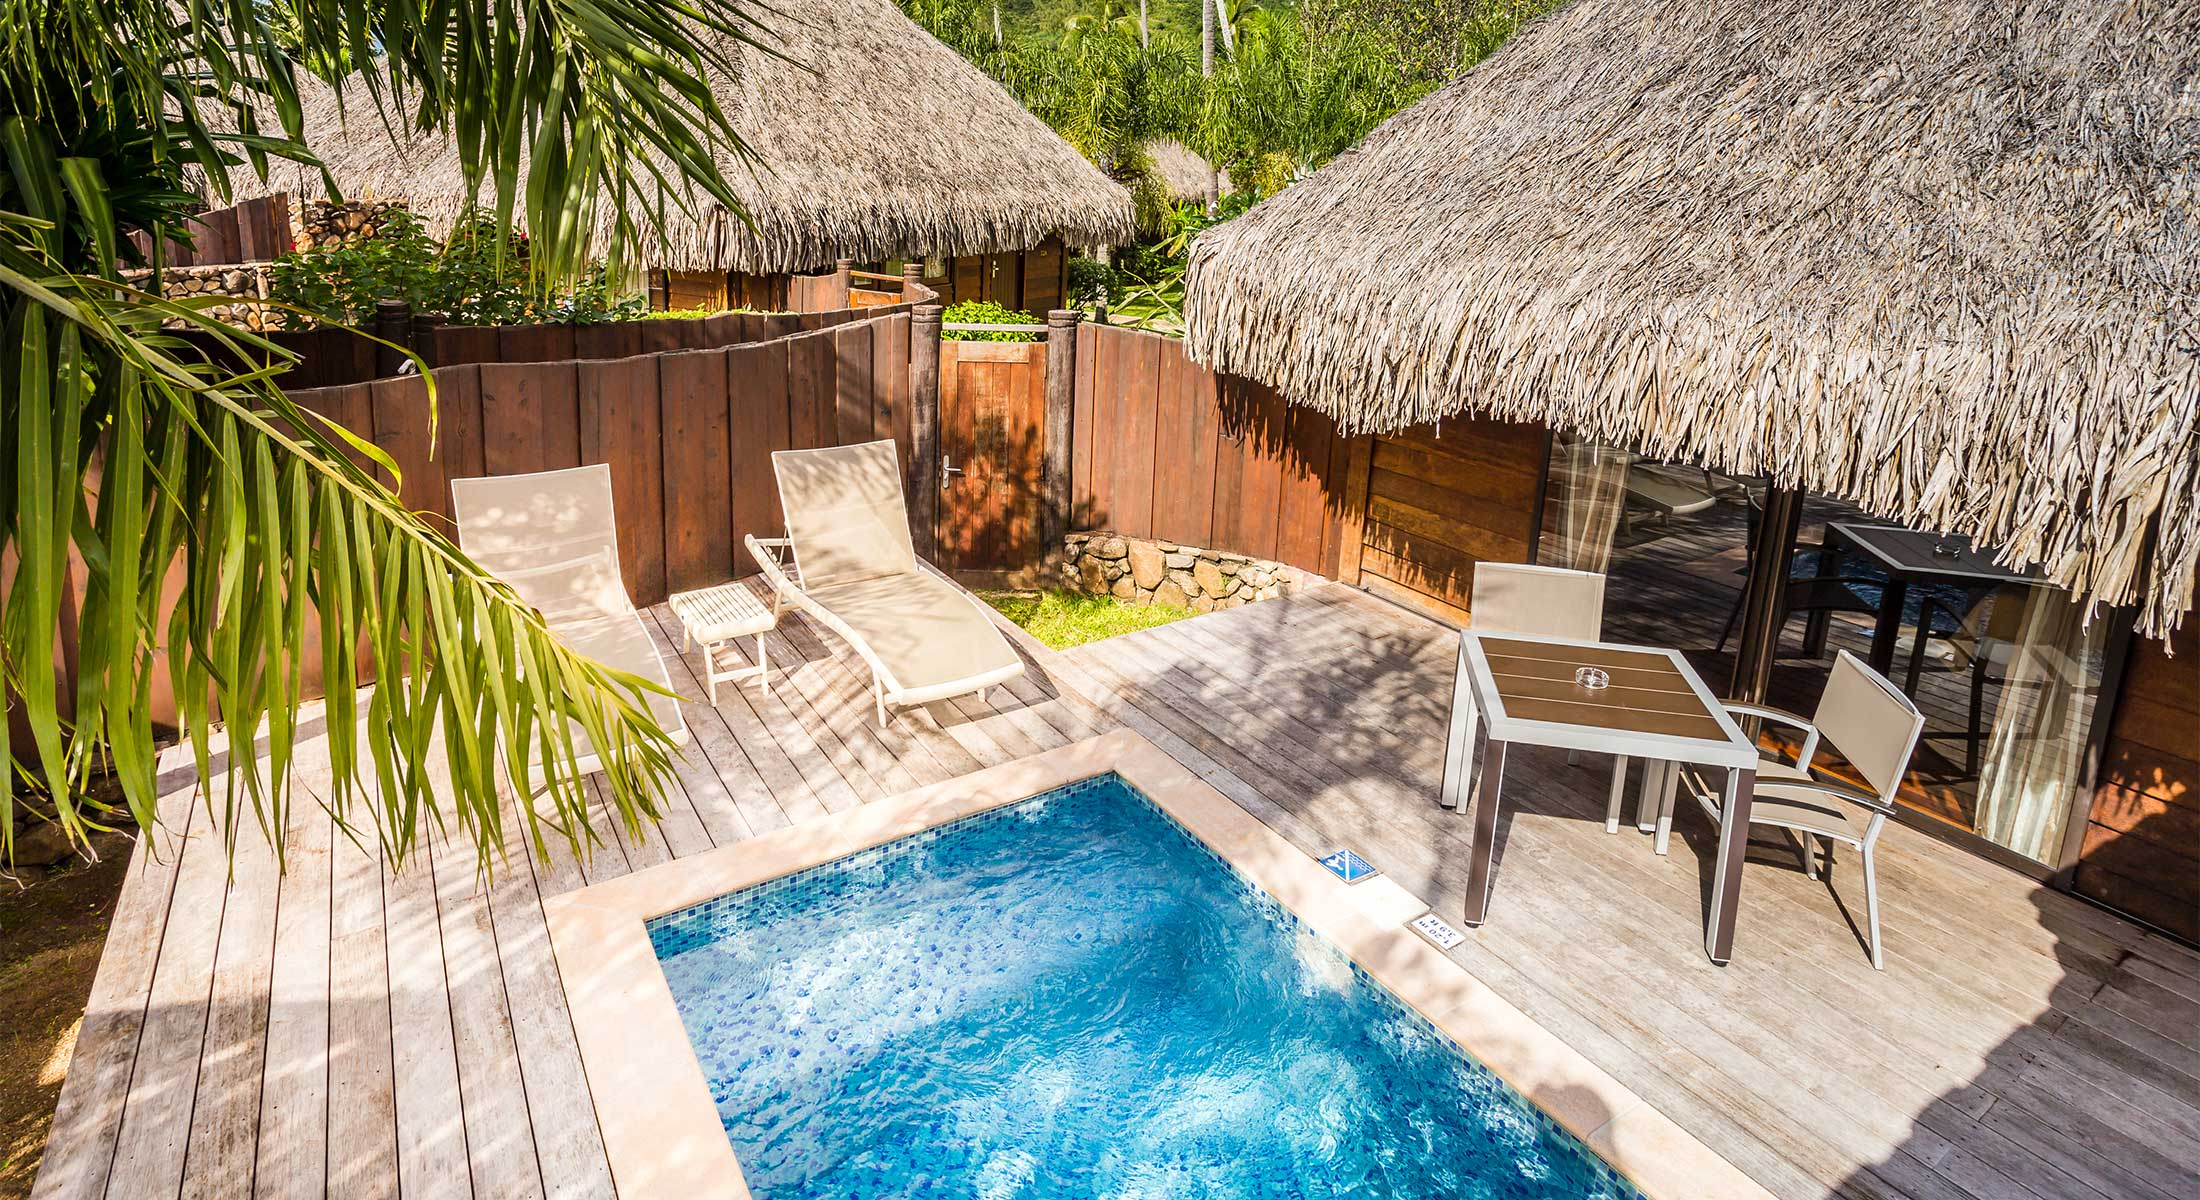 Accommodation premium garden pool bungalow moorea hotel for Garden pool bungalow